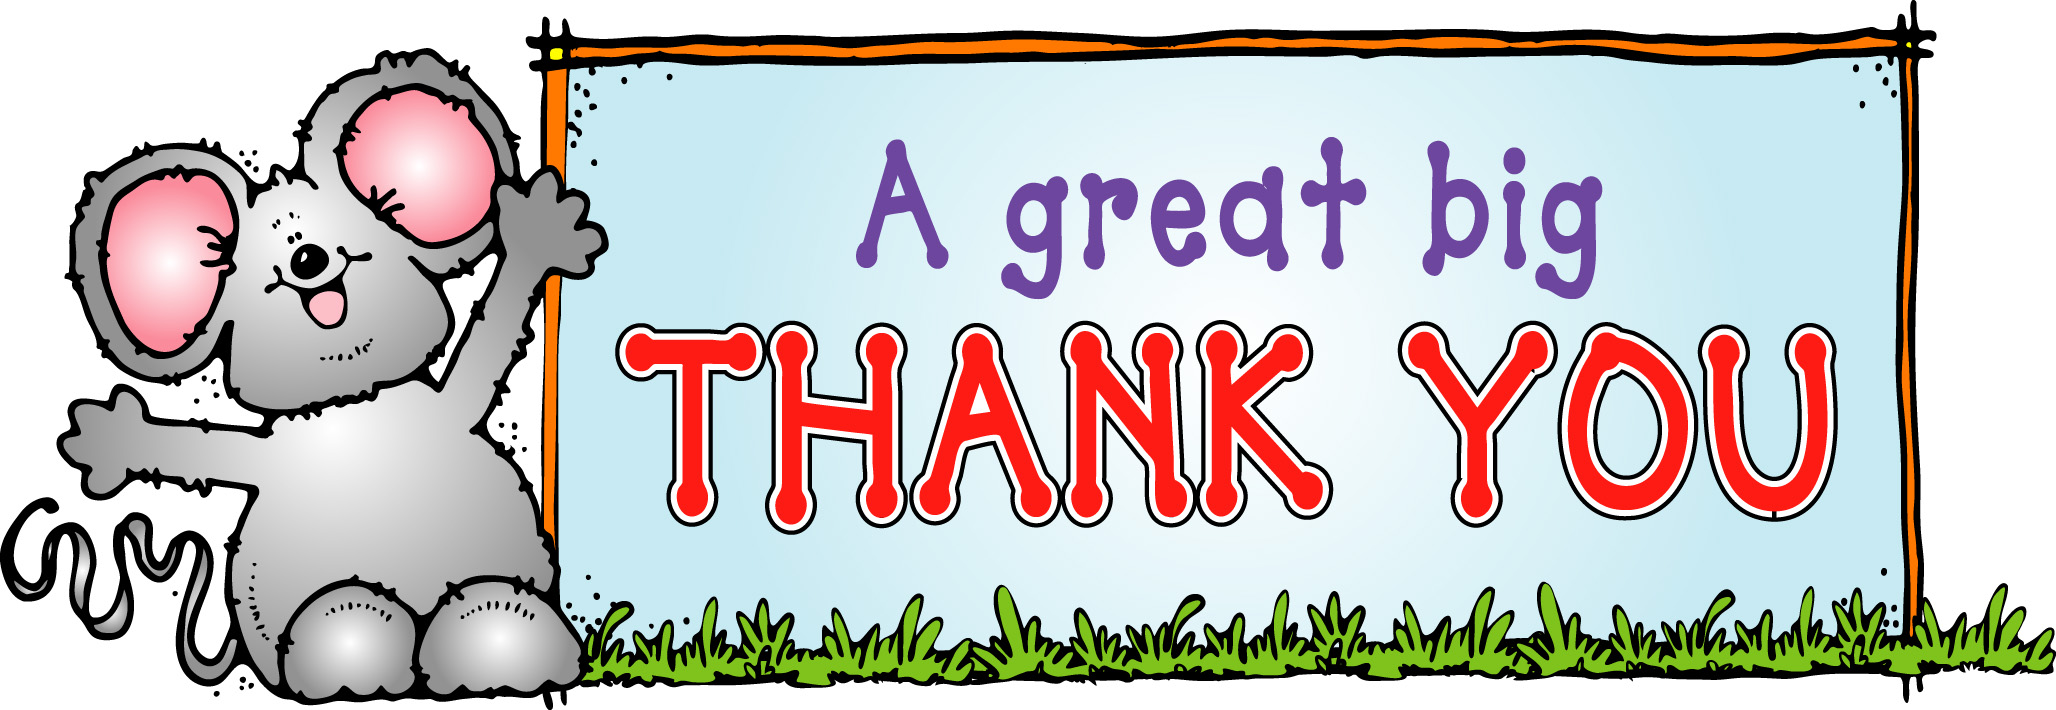 Thank you for your service clipart 4 » Clipart Station.